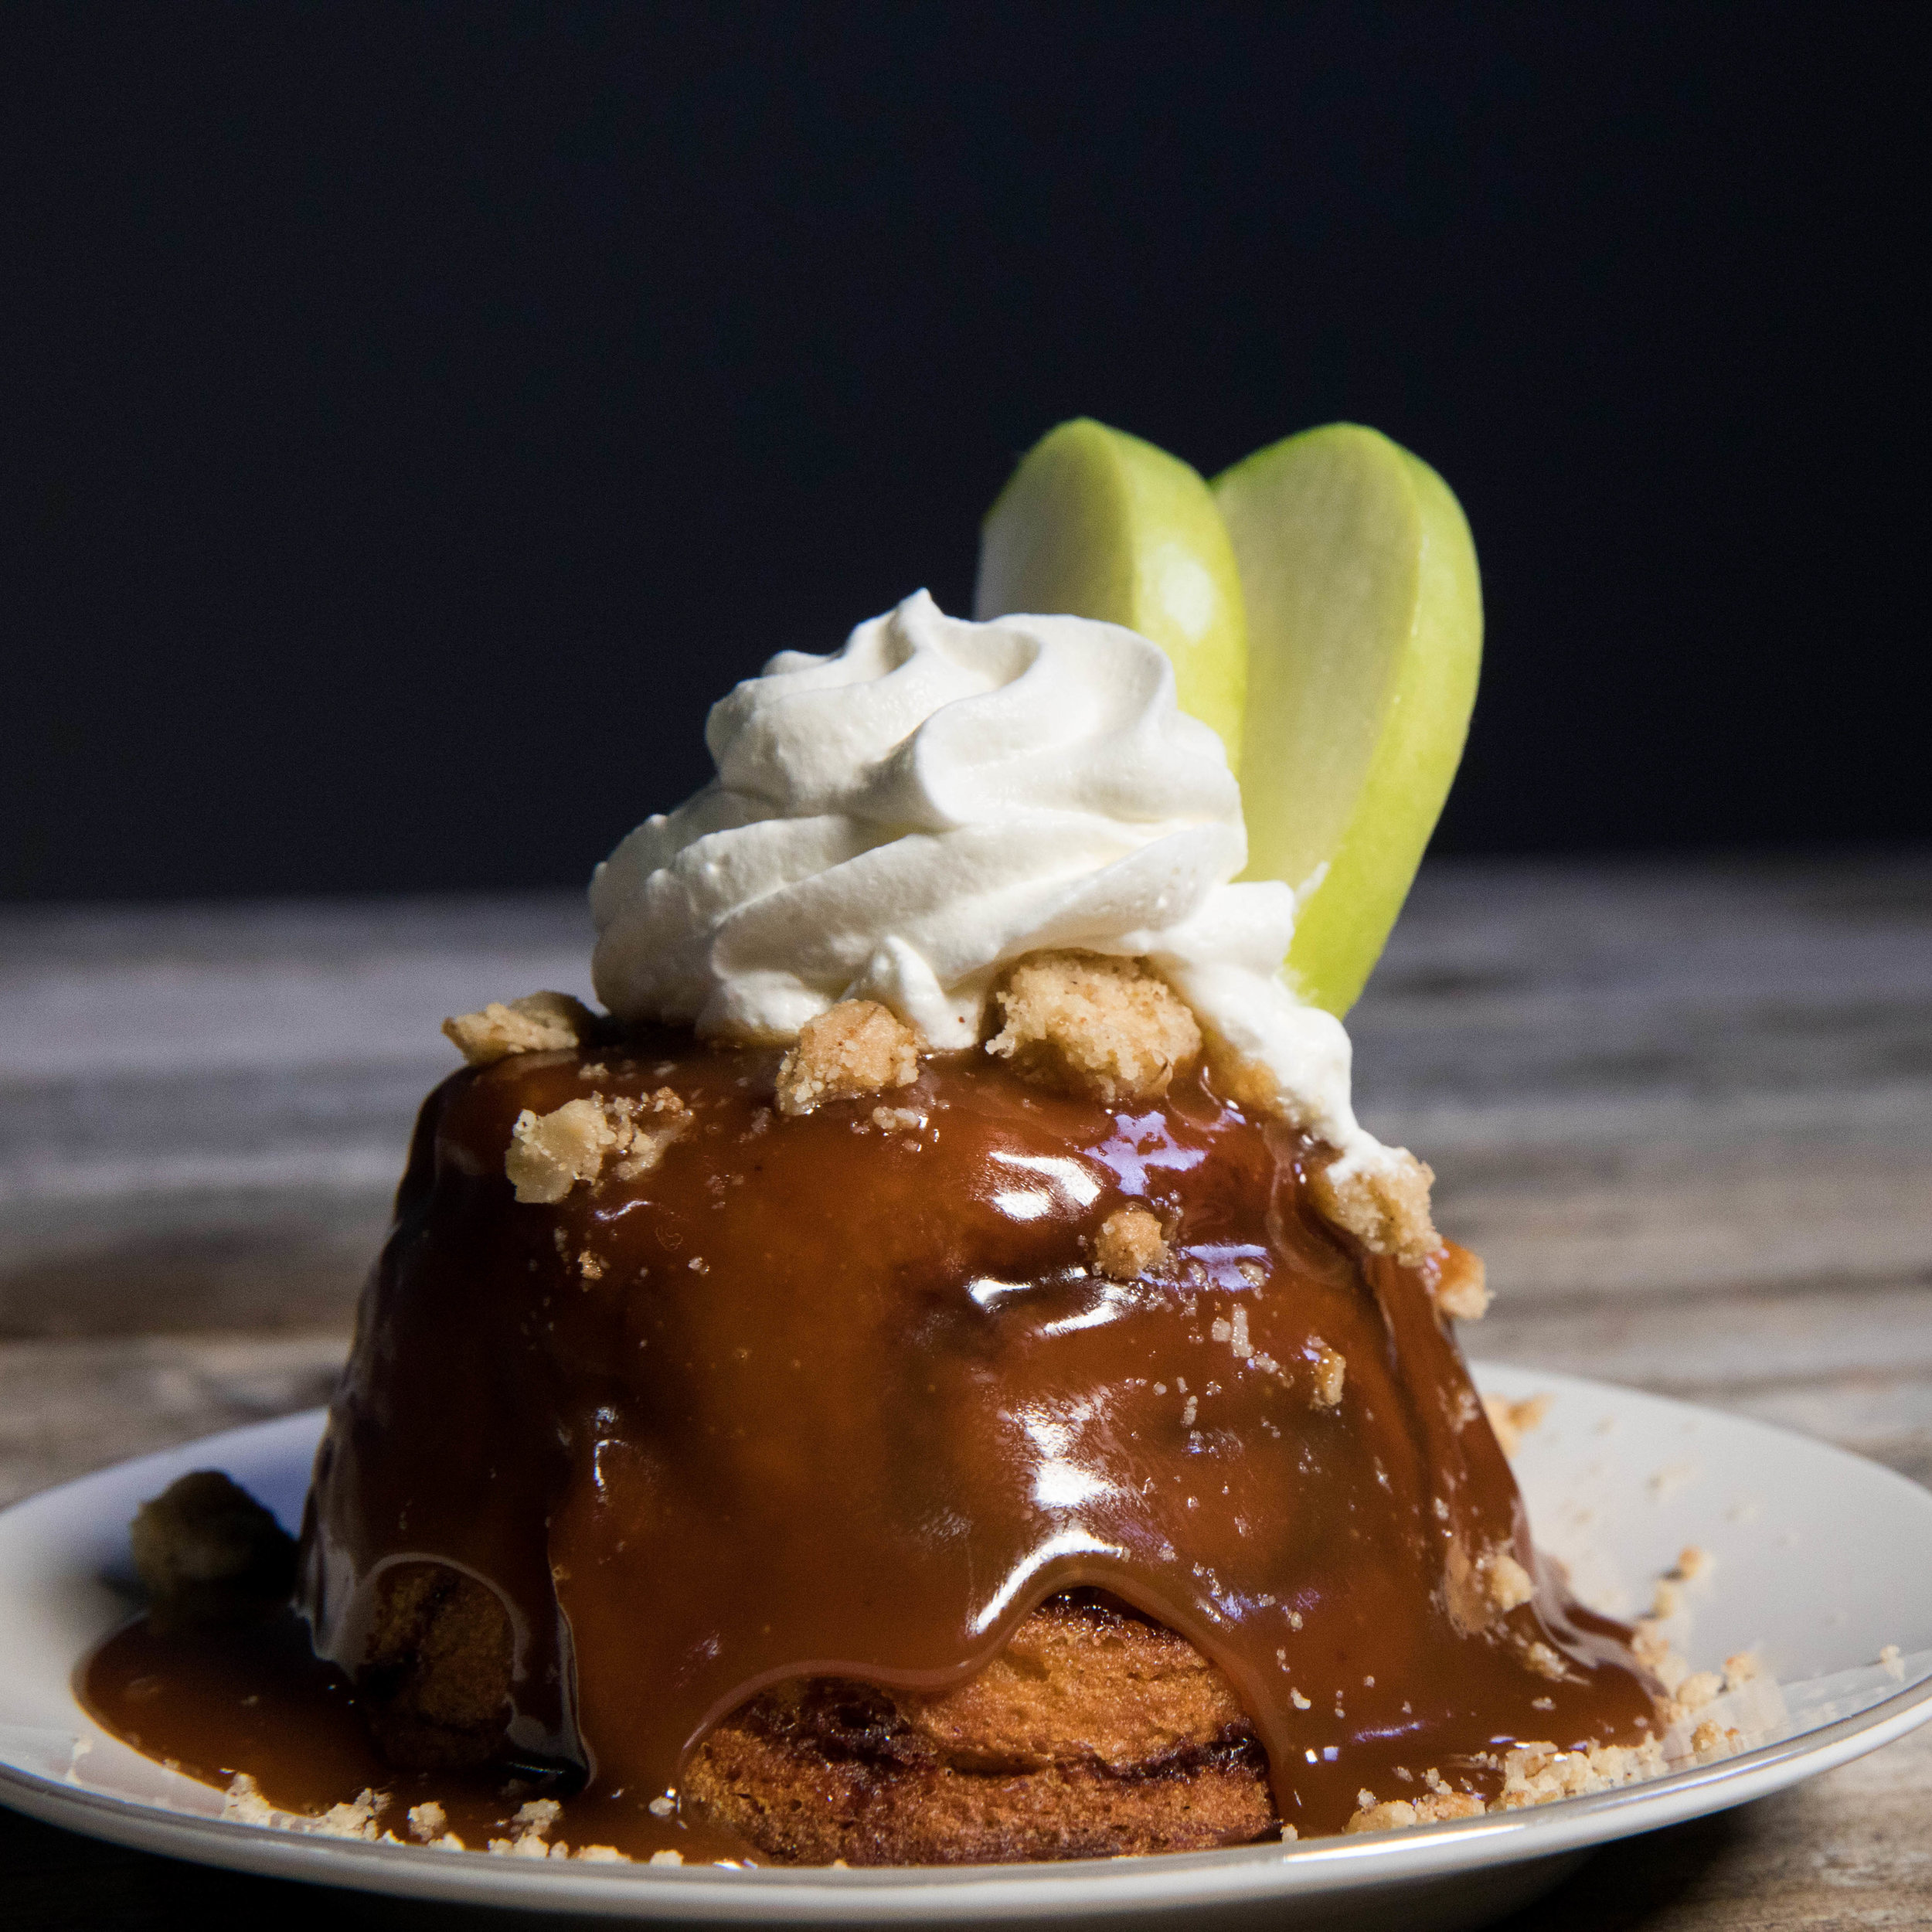 Upside Down Caramel Apple Pie |  our specialty pie crust filled with sautéed apples covered in a heated salted caramel sauce and streusel topping